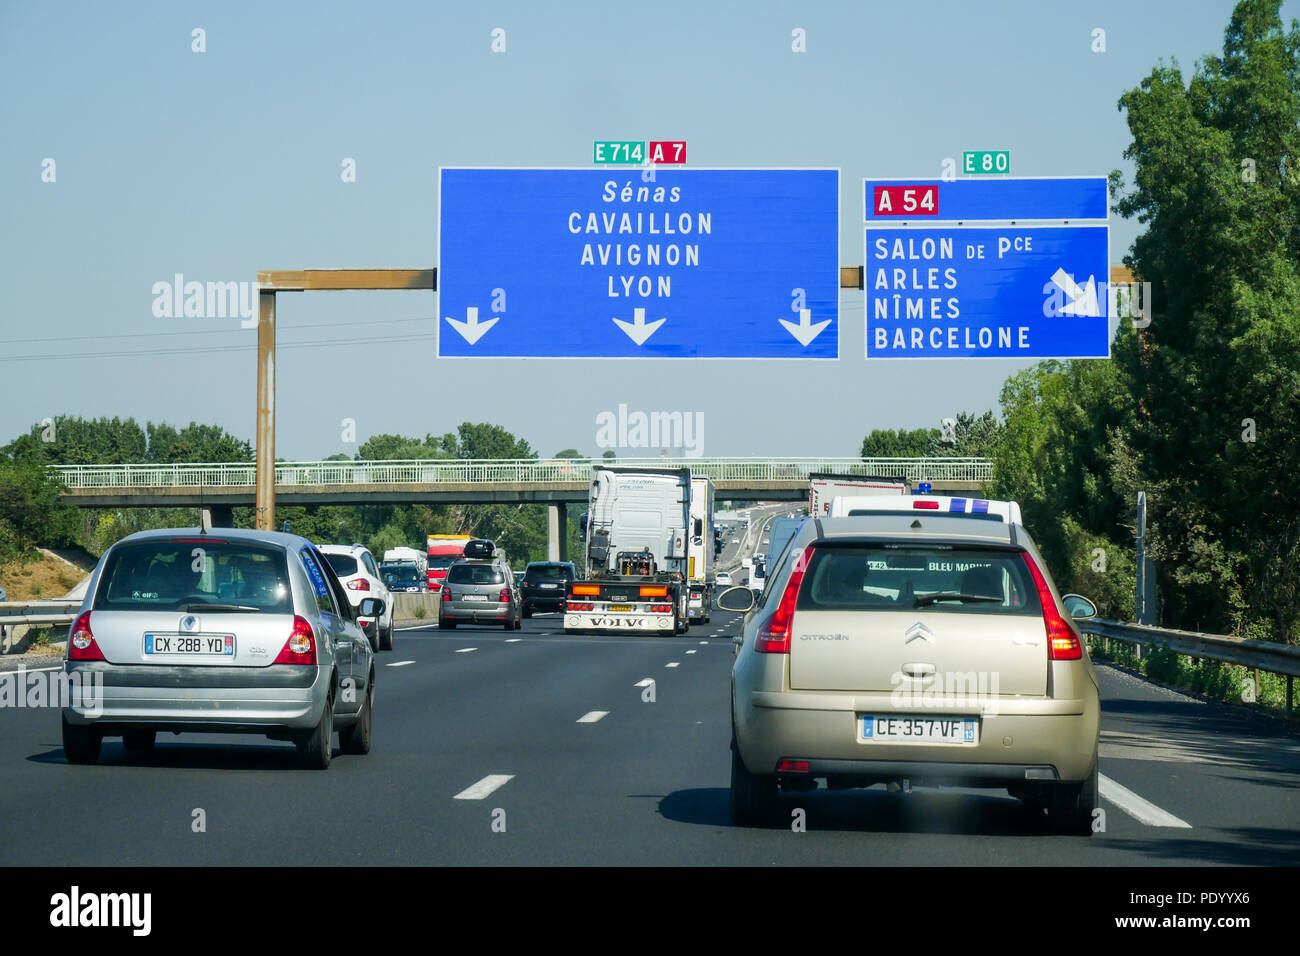 driving on a7 highway autoroute du soleil illustration rhone valley france stock photo. Black Bedroom Furniture Sets. Home Design Ideas